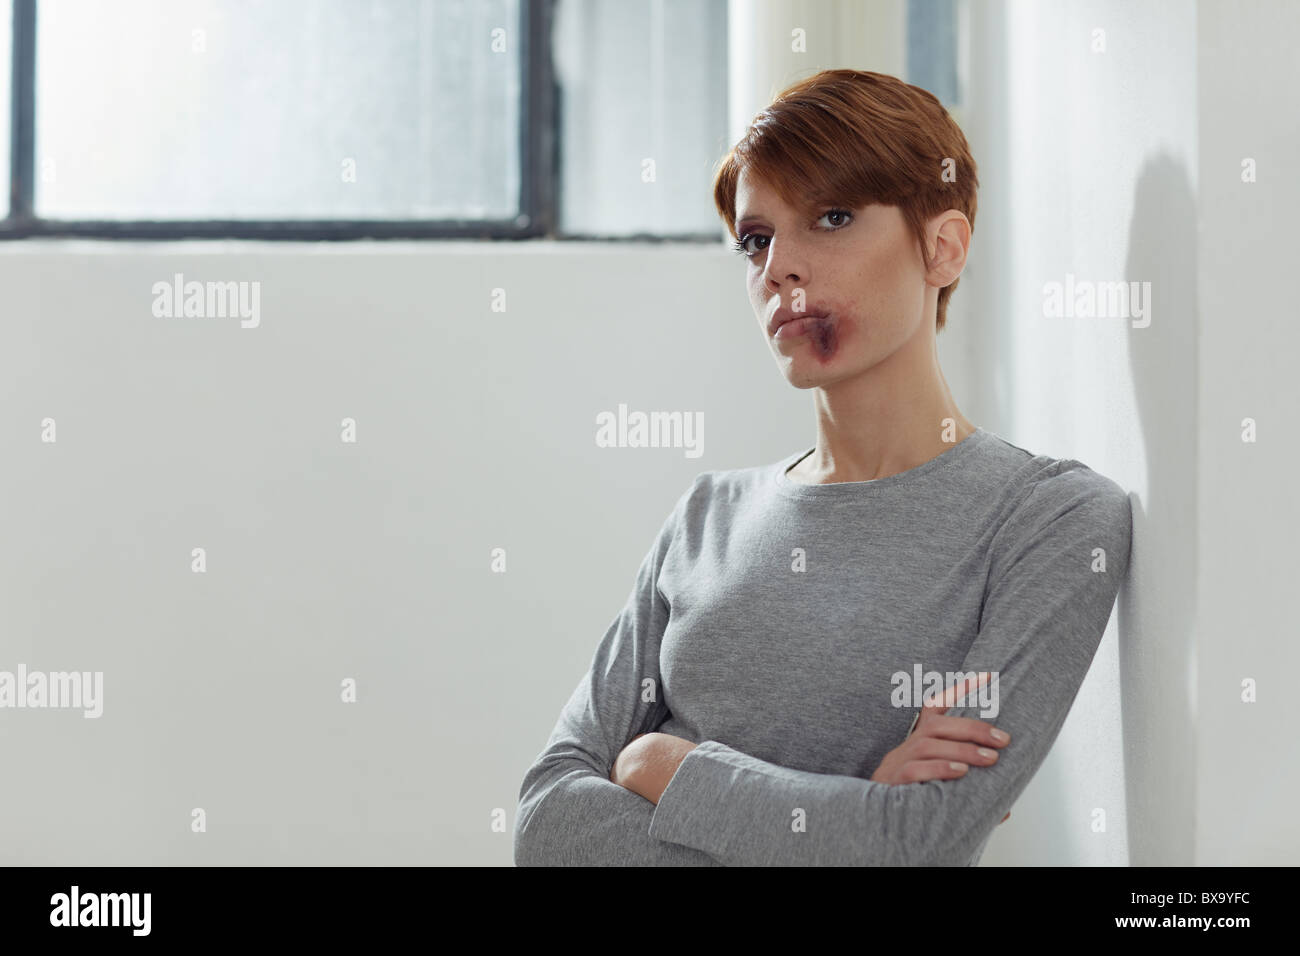 portrait of young caucasian woman being abused. Horizontal shape, front view, copy space - Stock Image